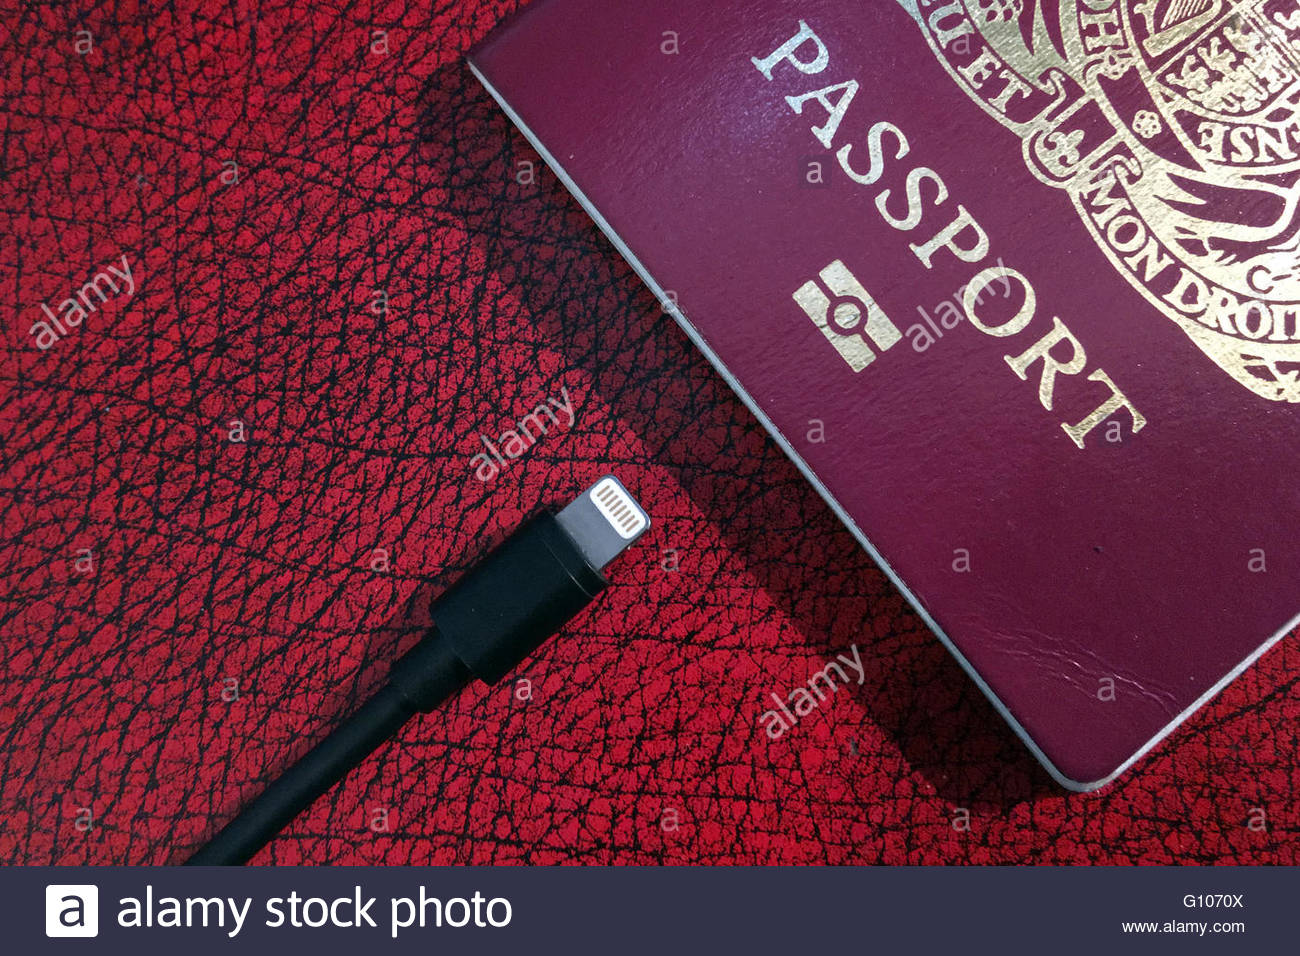 Biometric Uk Passport With Embedded Electronic Chip